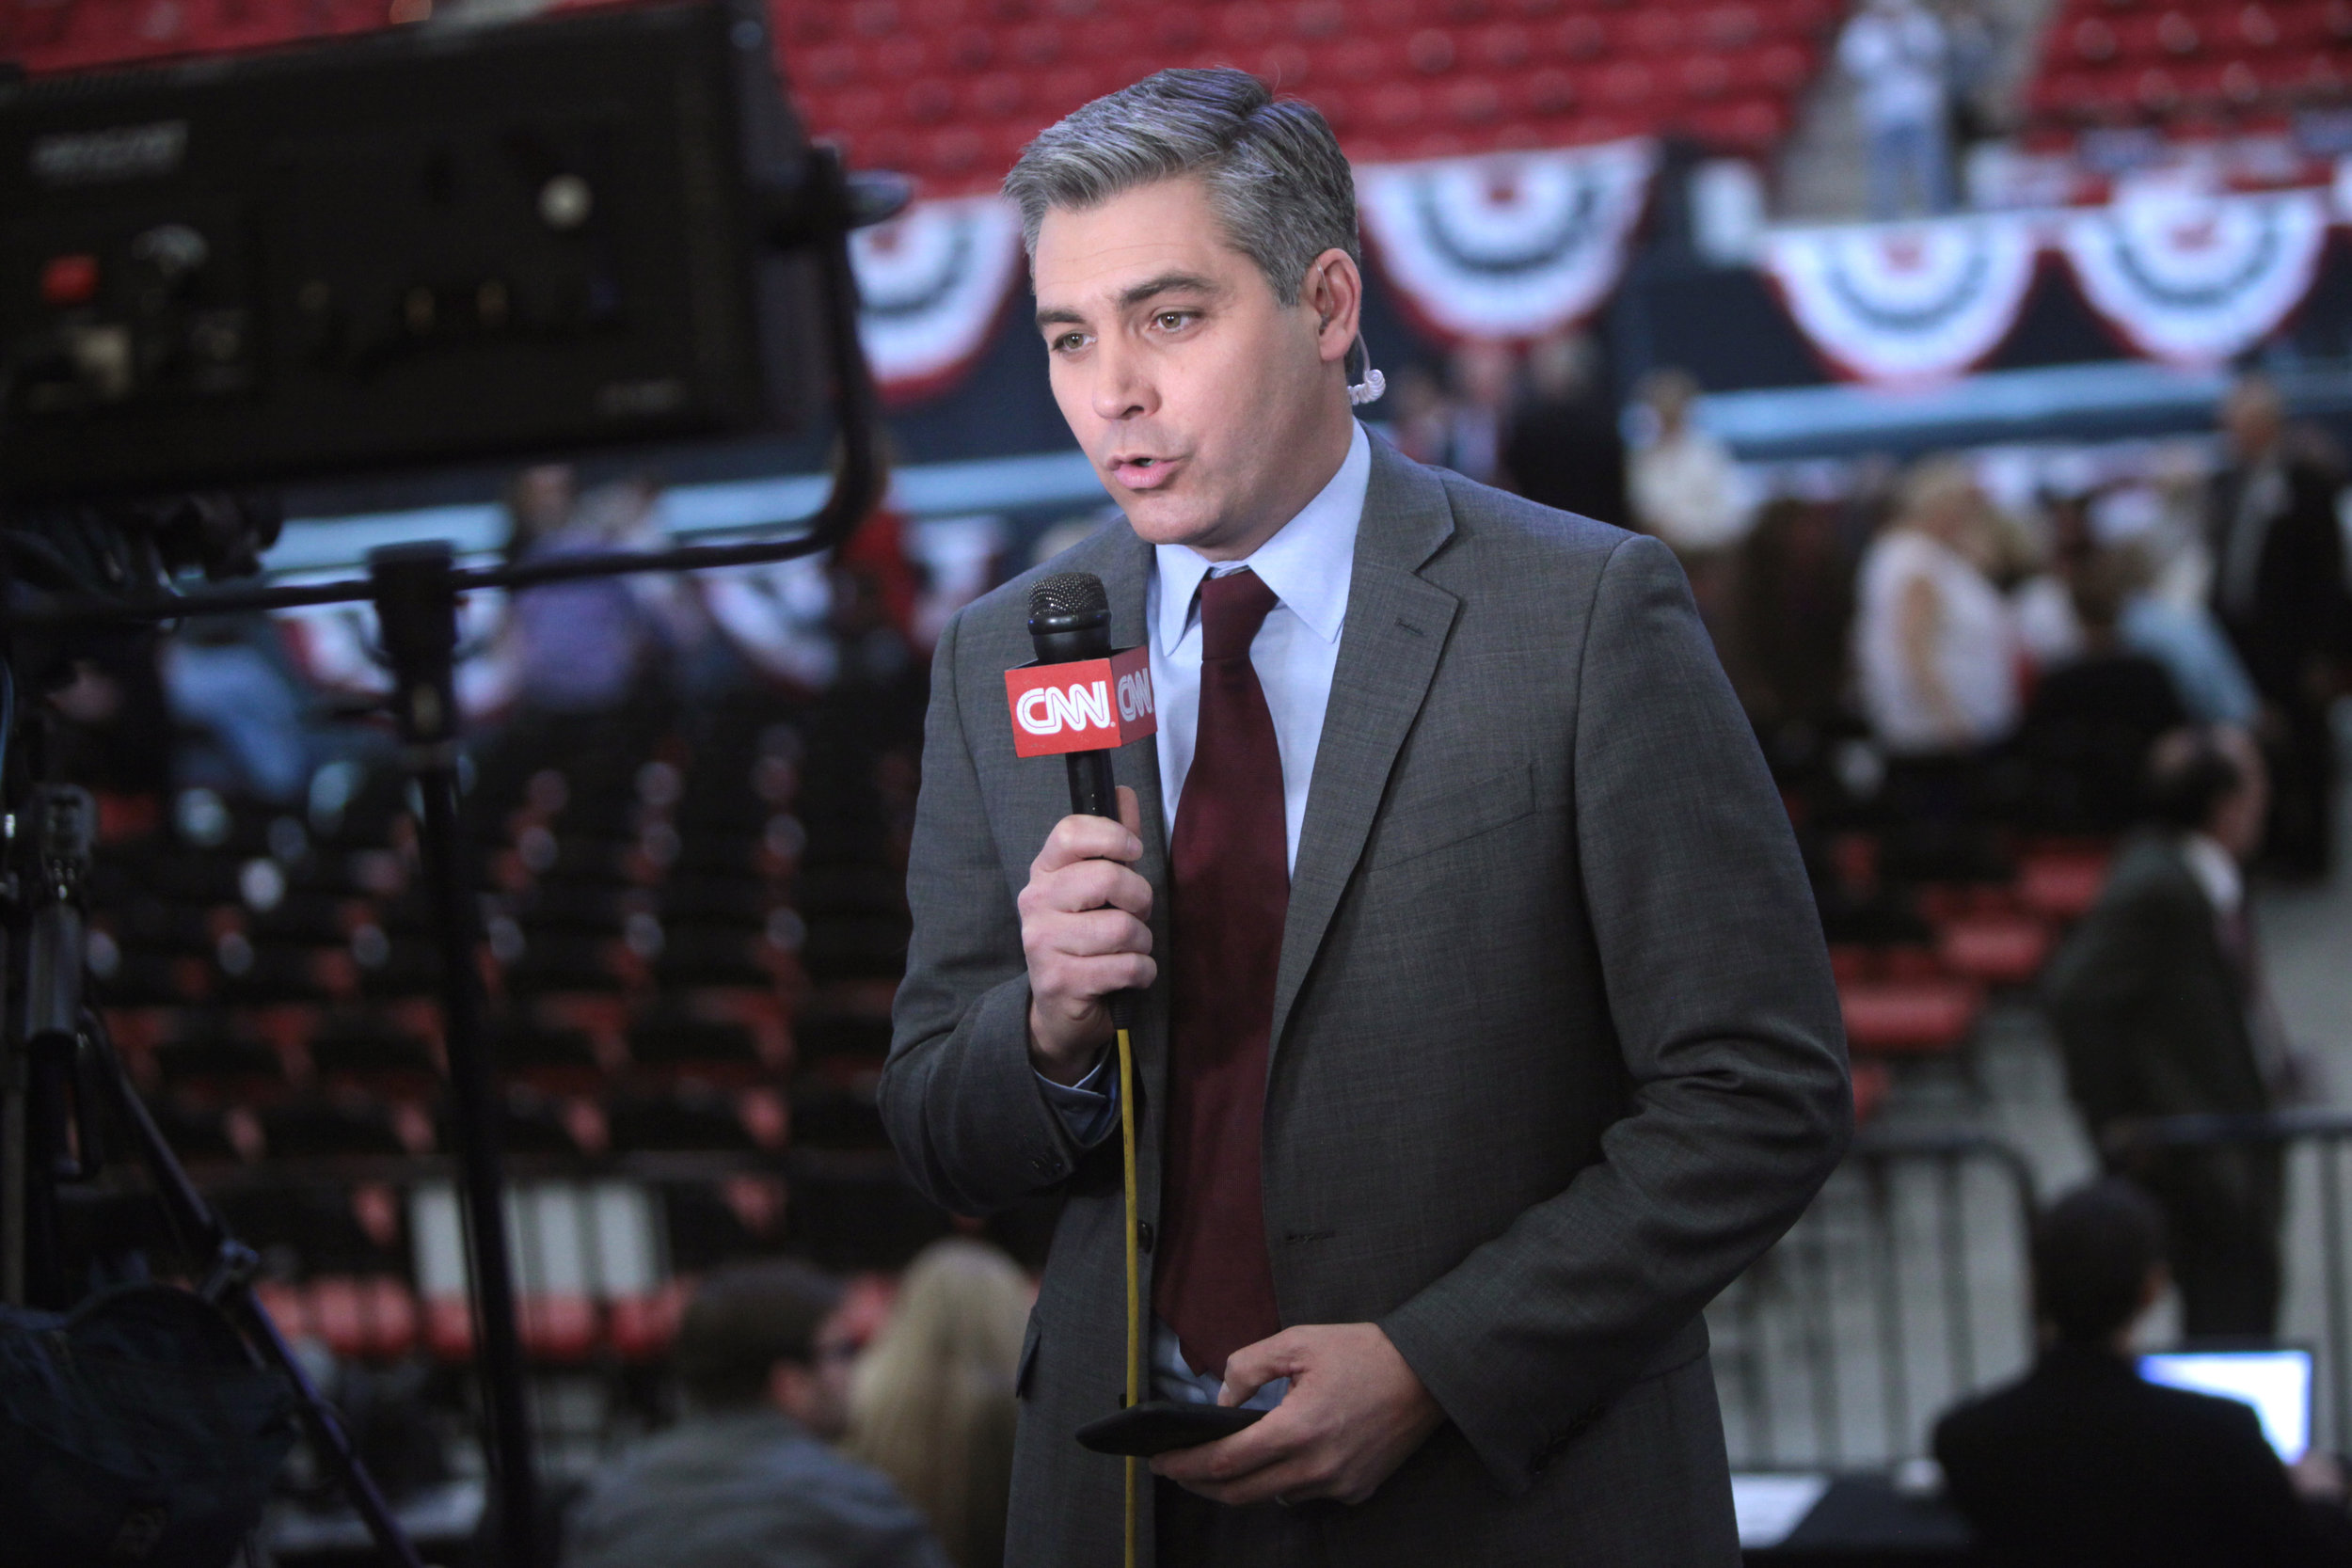 Photo of Jim Acosta by, Gage Skidmore